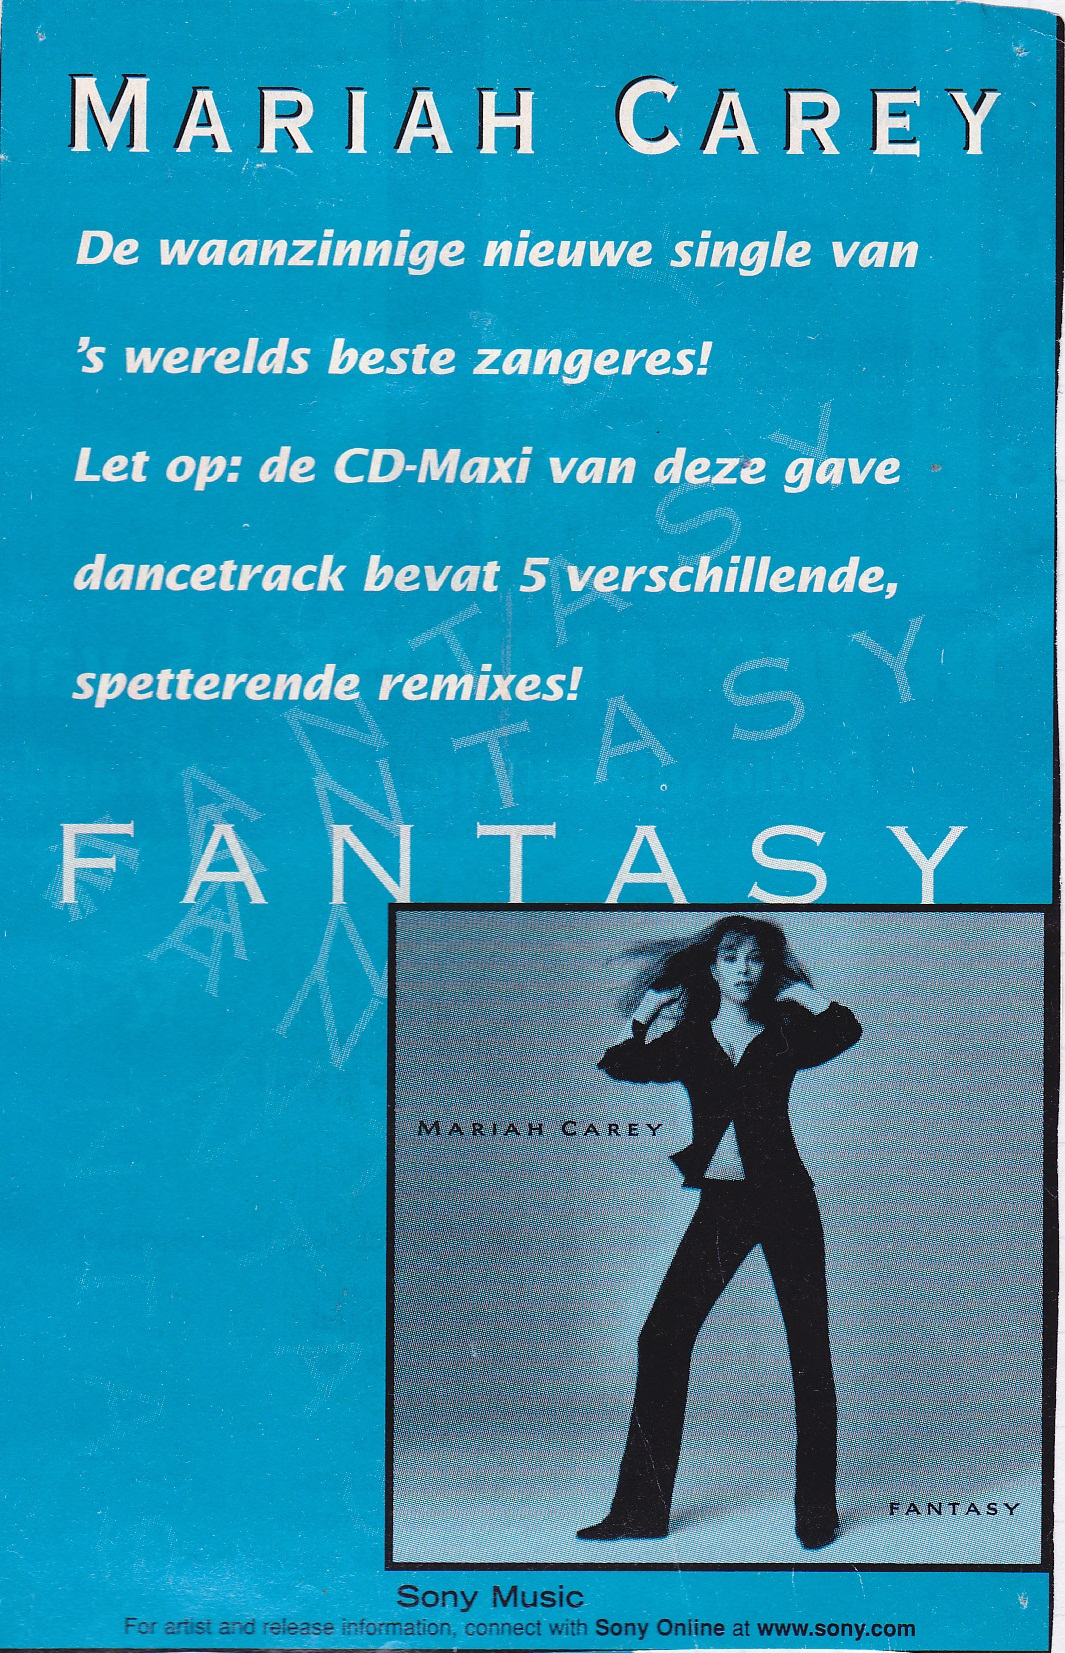 720286483_1995_advertentie_fantasy_02_122_558lo.jpg